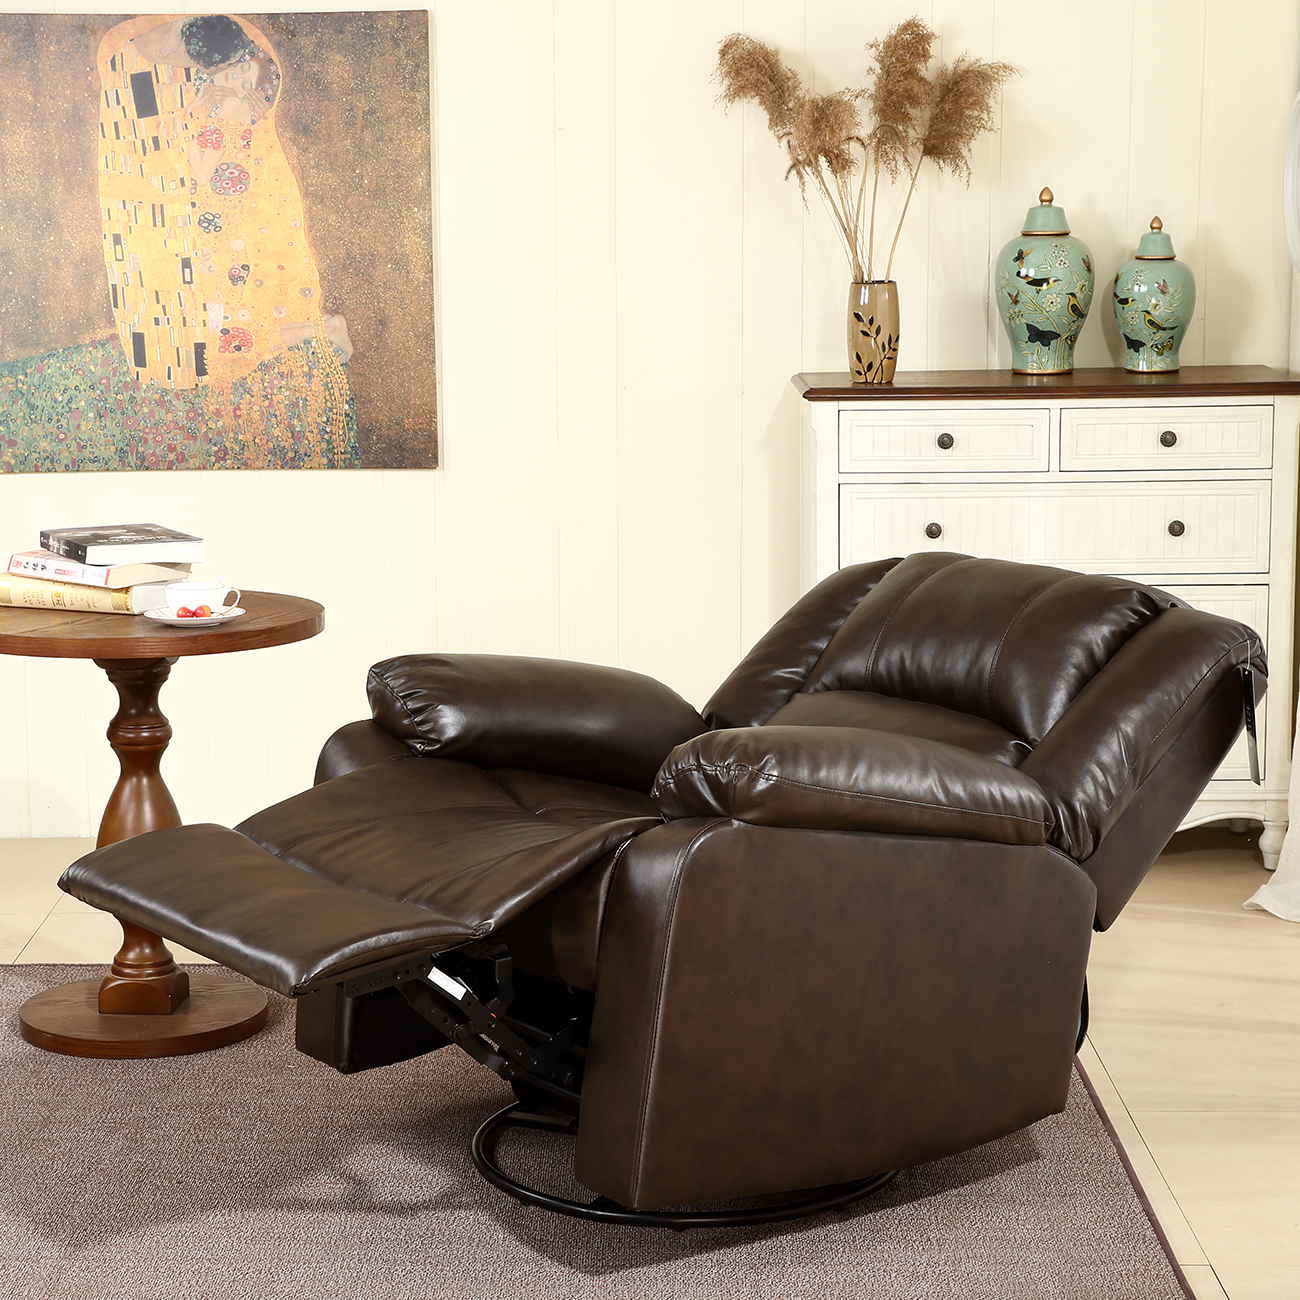 Rocking Swivel Chair New Recliner And Rocking Swivel Chair Leather Seat Living